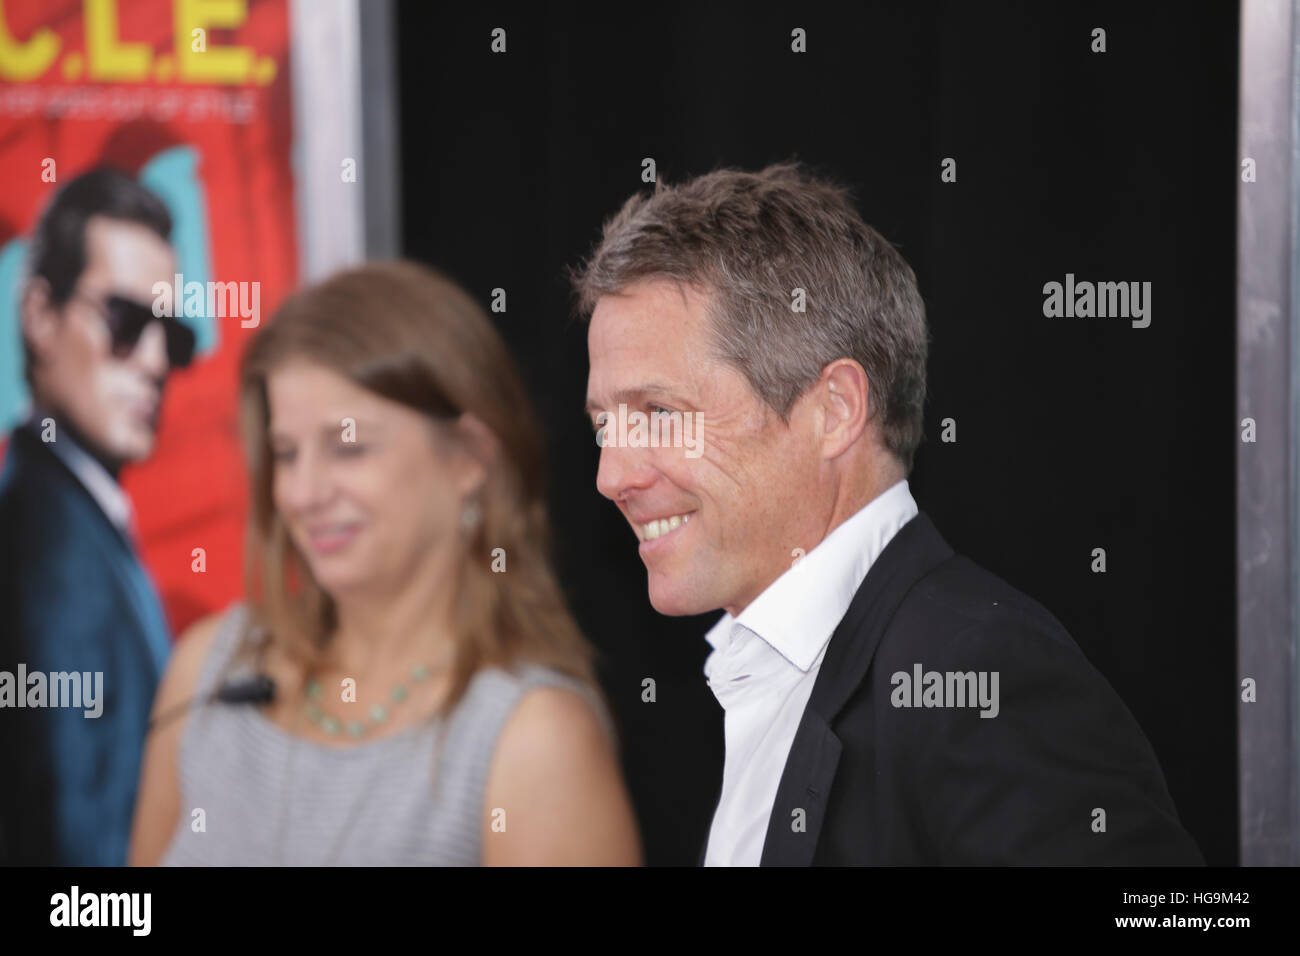 Hugh Grant arrives at The Man From U.N.C.L.E premiere at the Zigfield Theater in NYC. - Stock Image